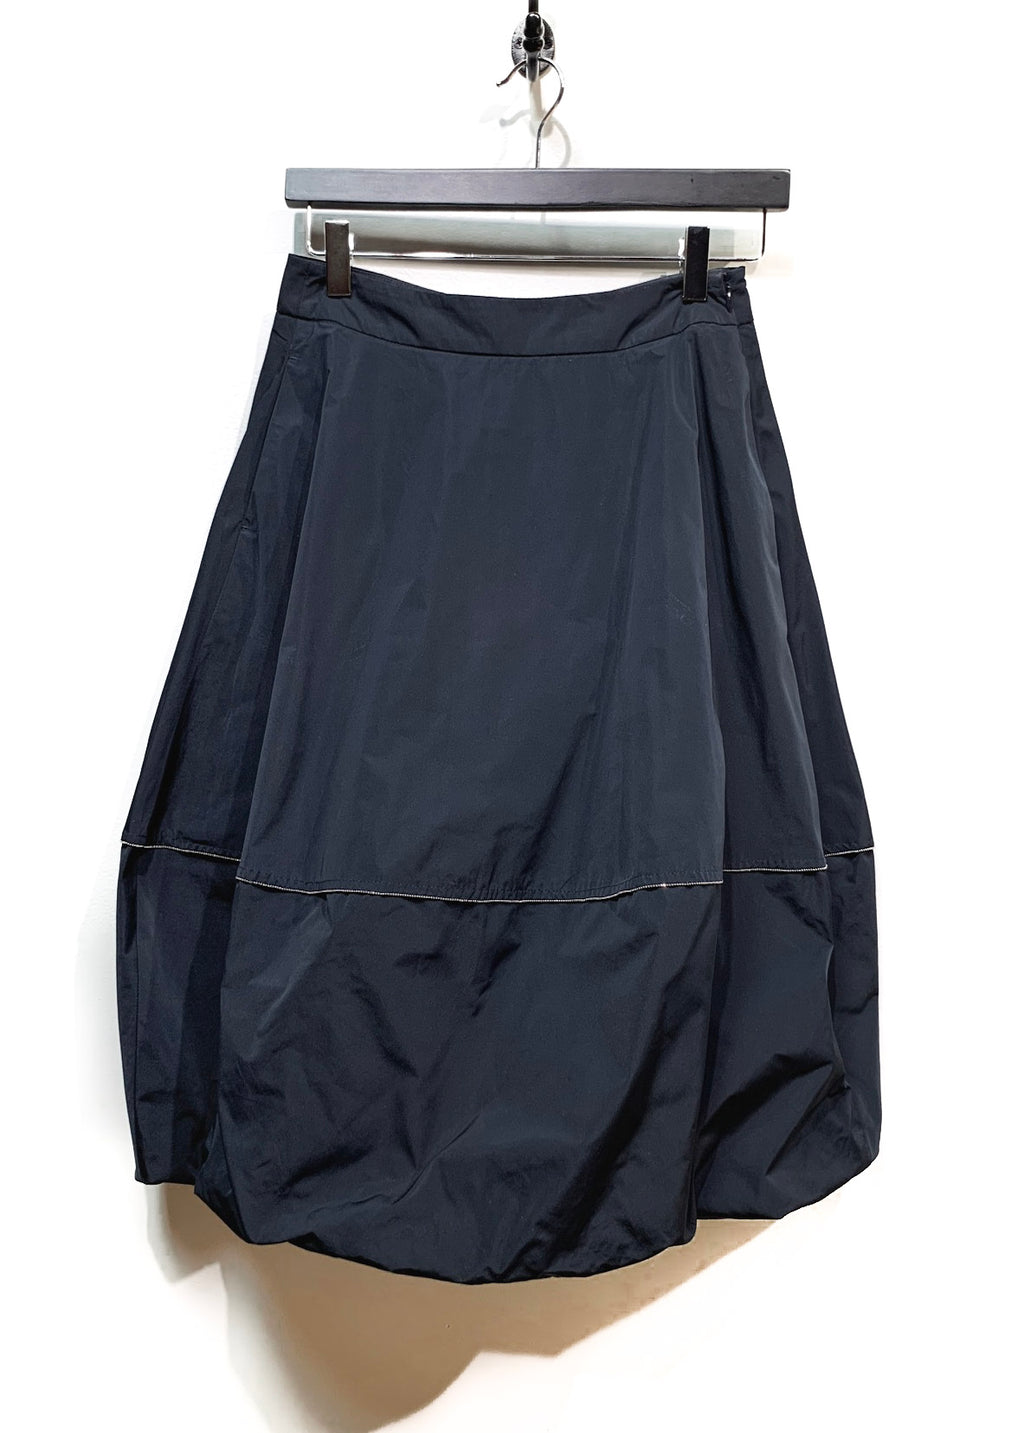 Peserico Navy Balloon Skirt With Silver Zipper Detail